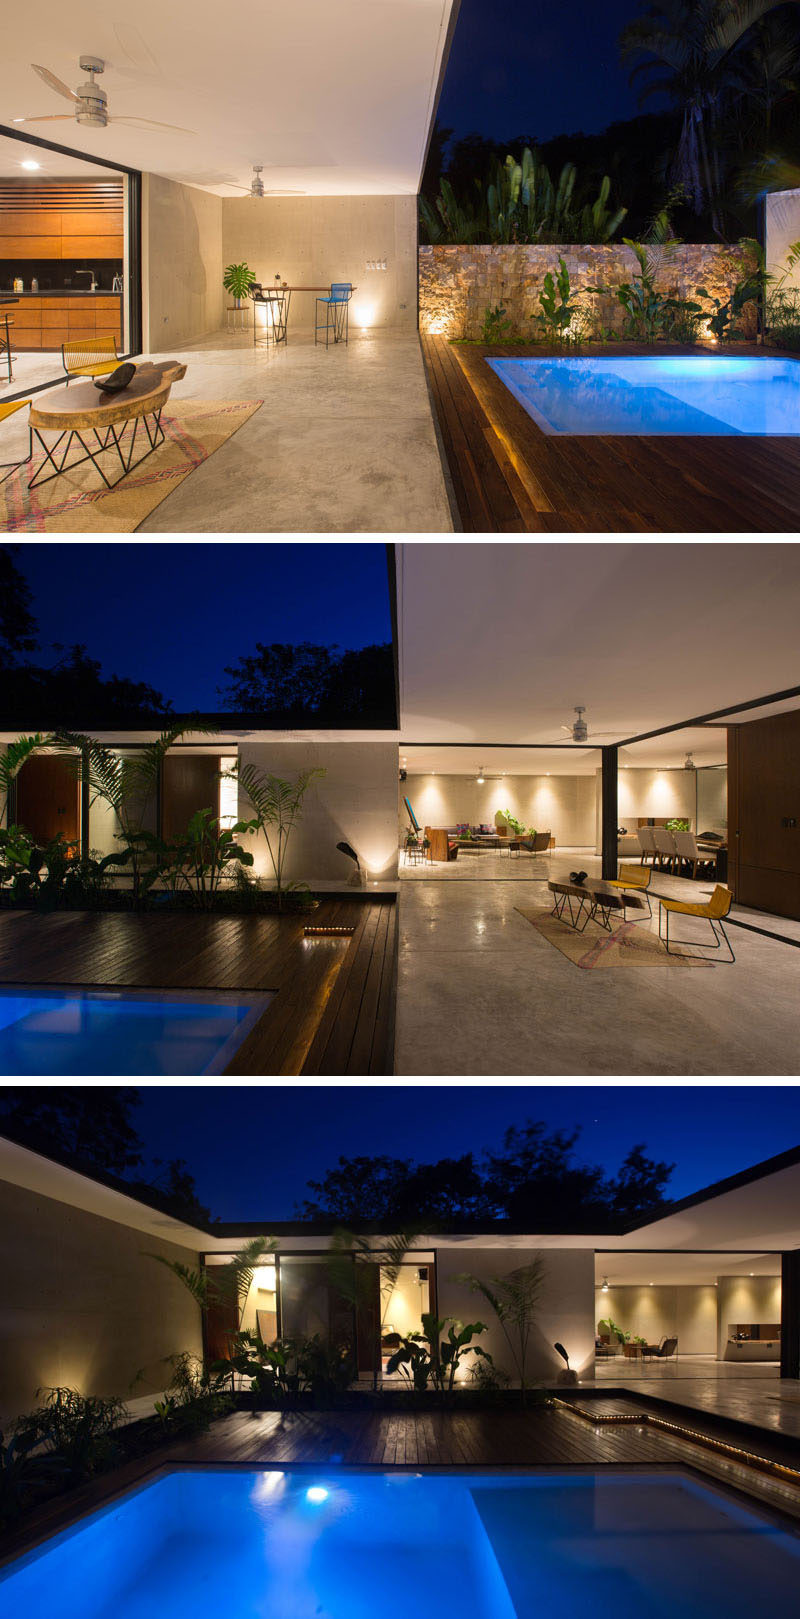 This home wraps around a courtyard and due to the design of the home, a large overhang created a covered outdoor entertaining space.